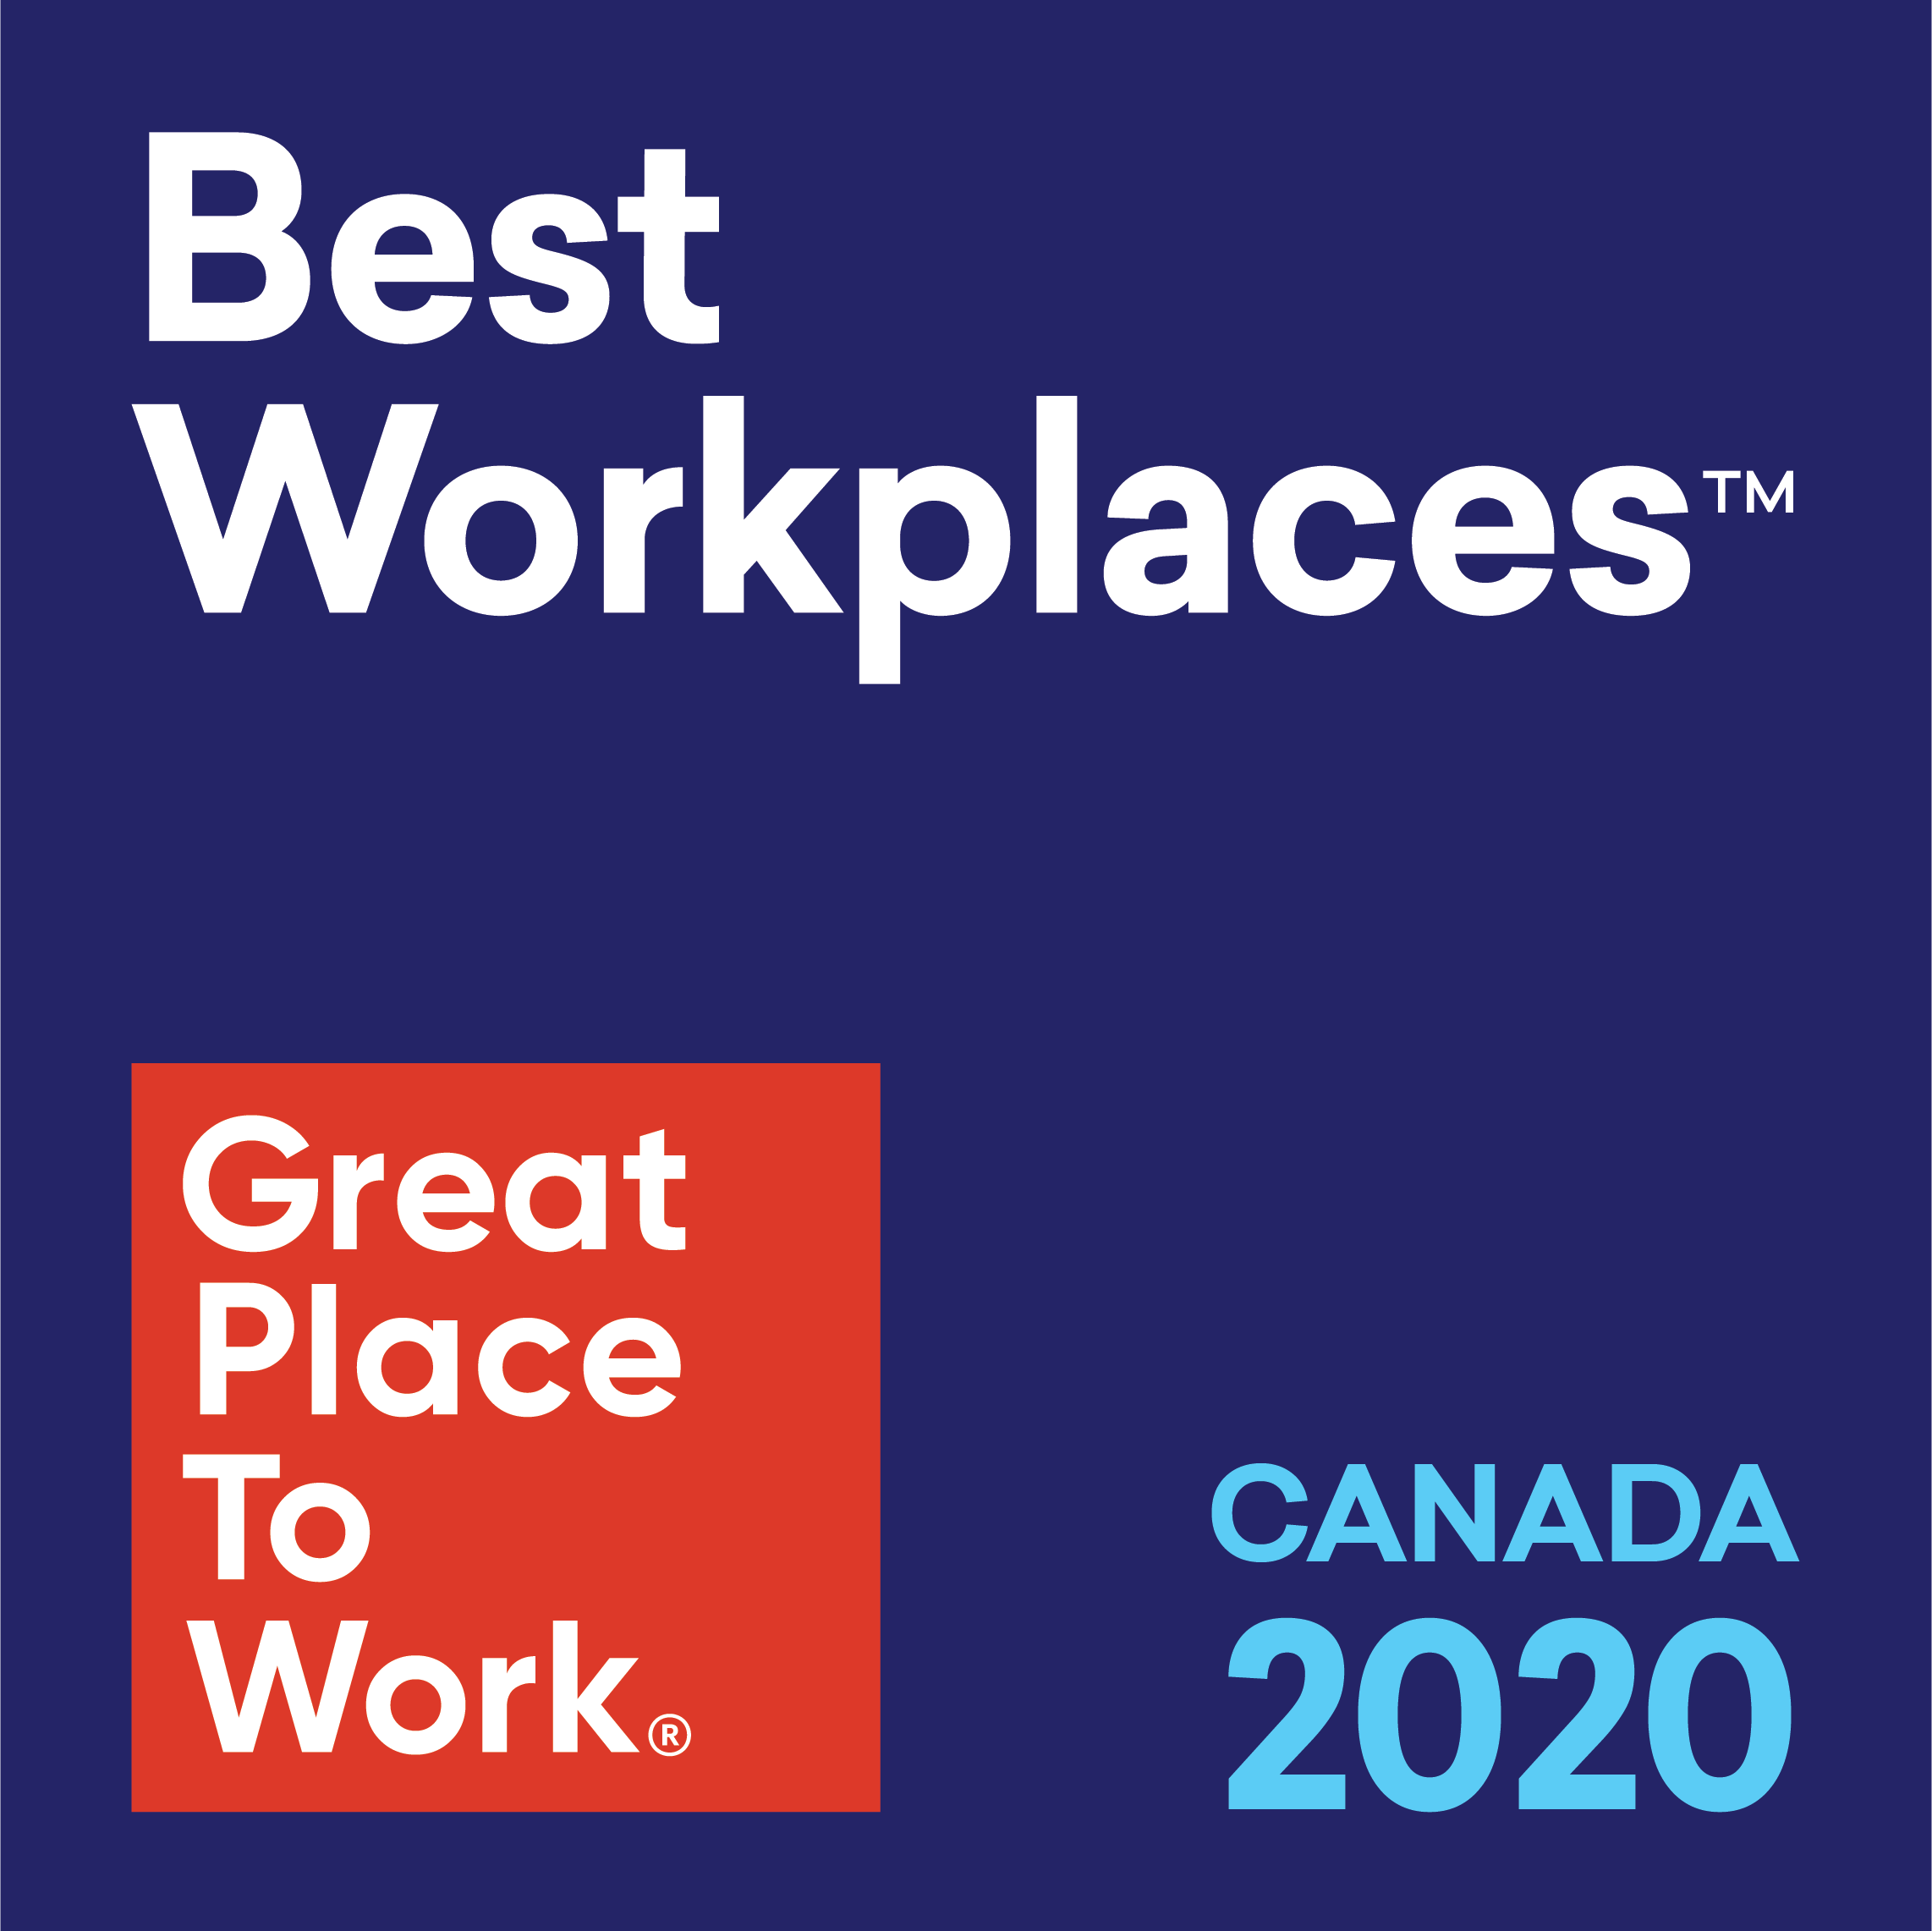 Best Workplaces in Canada 2020 less than 100 employees